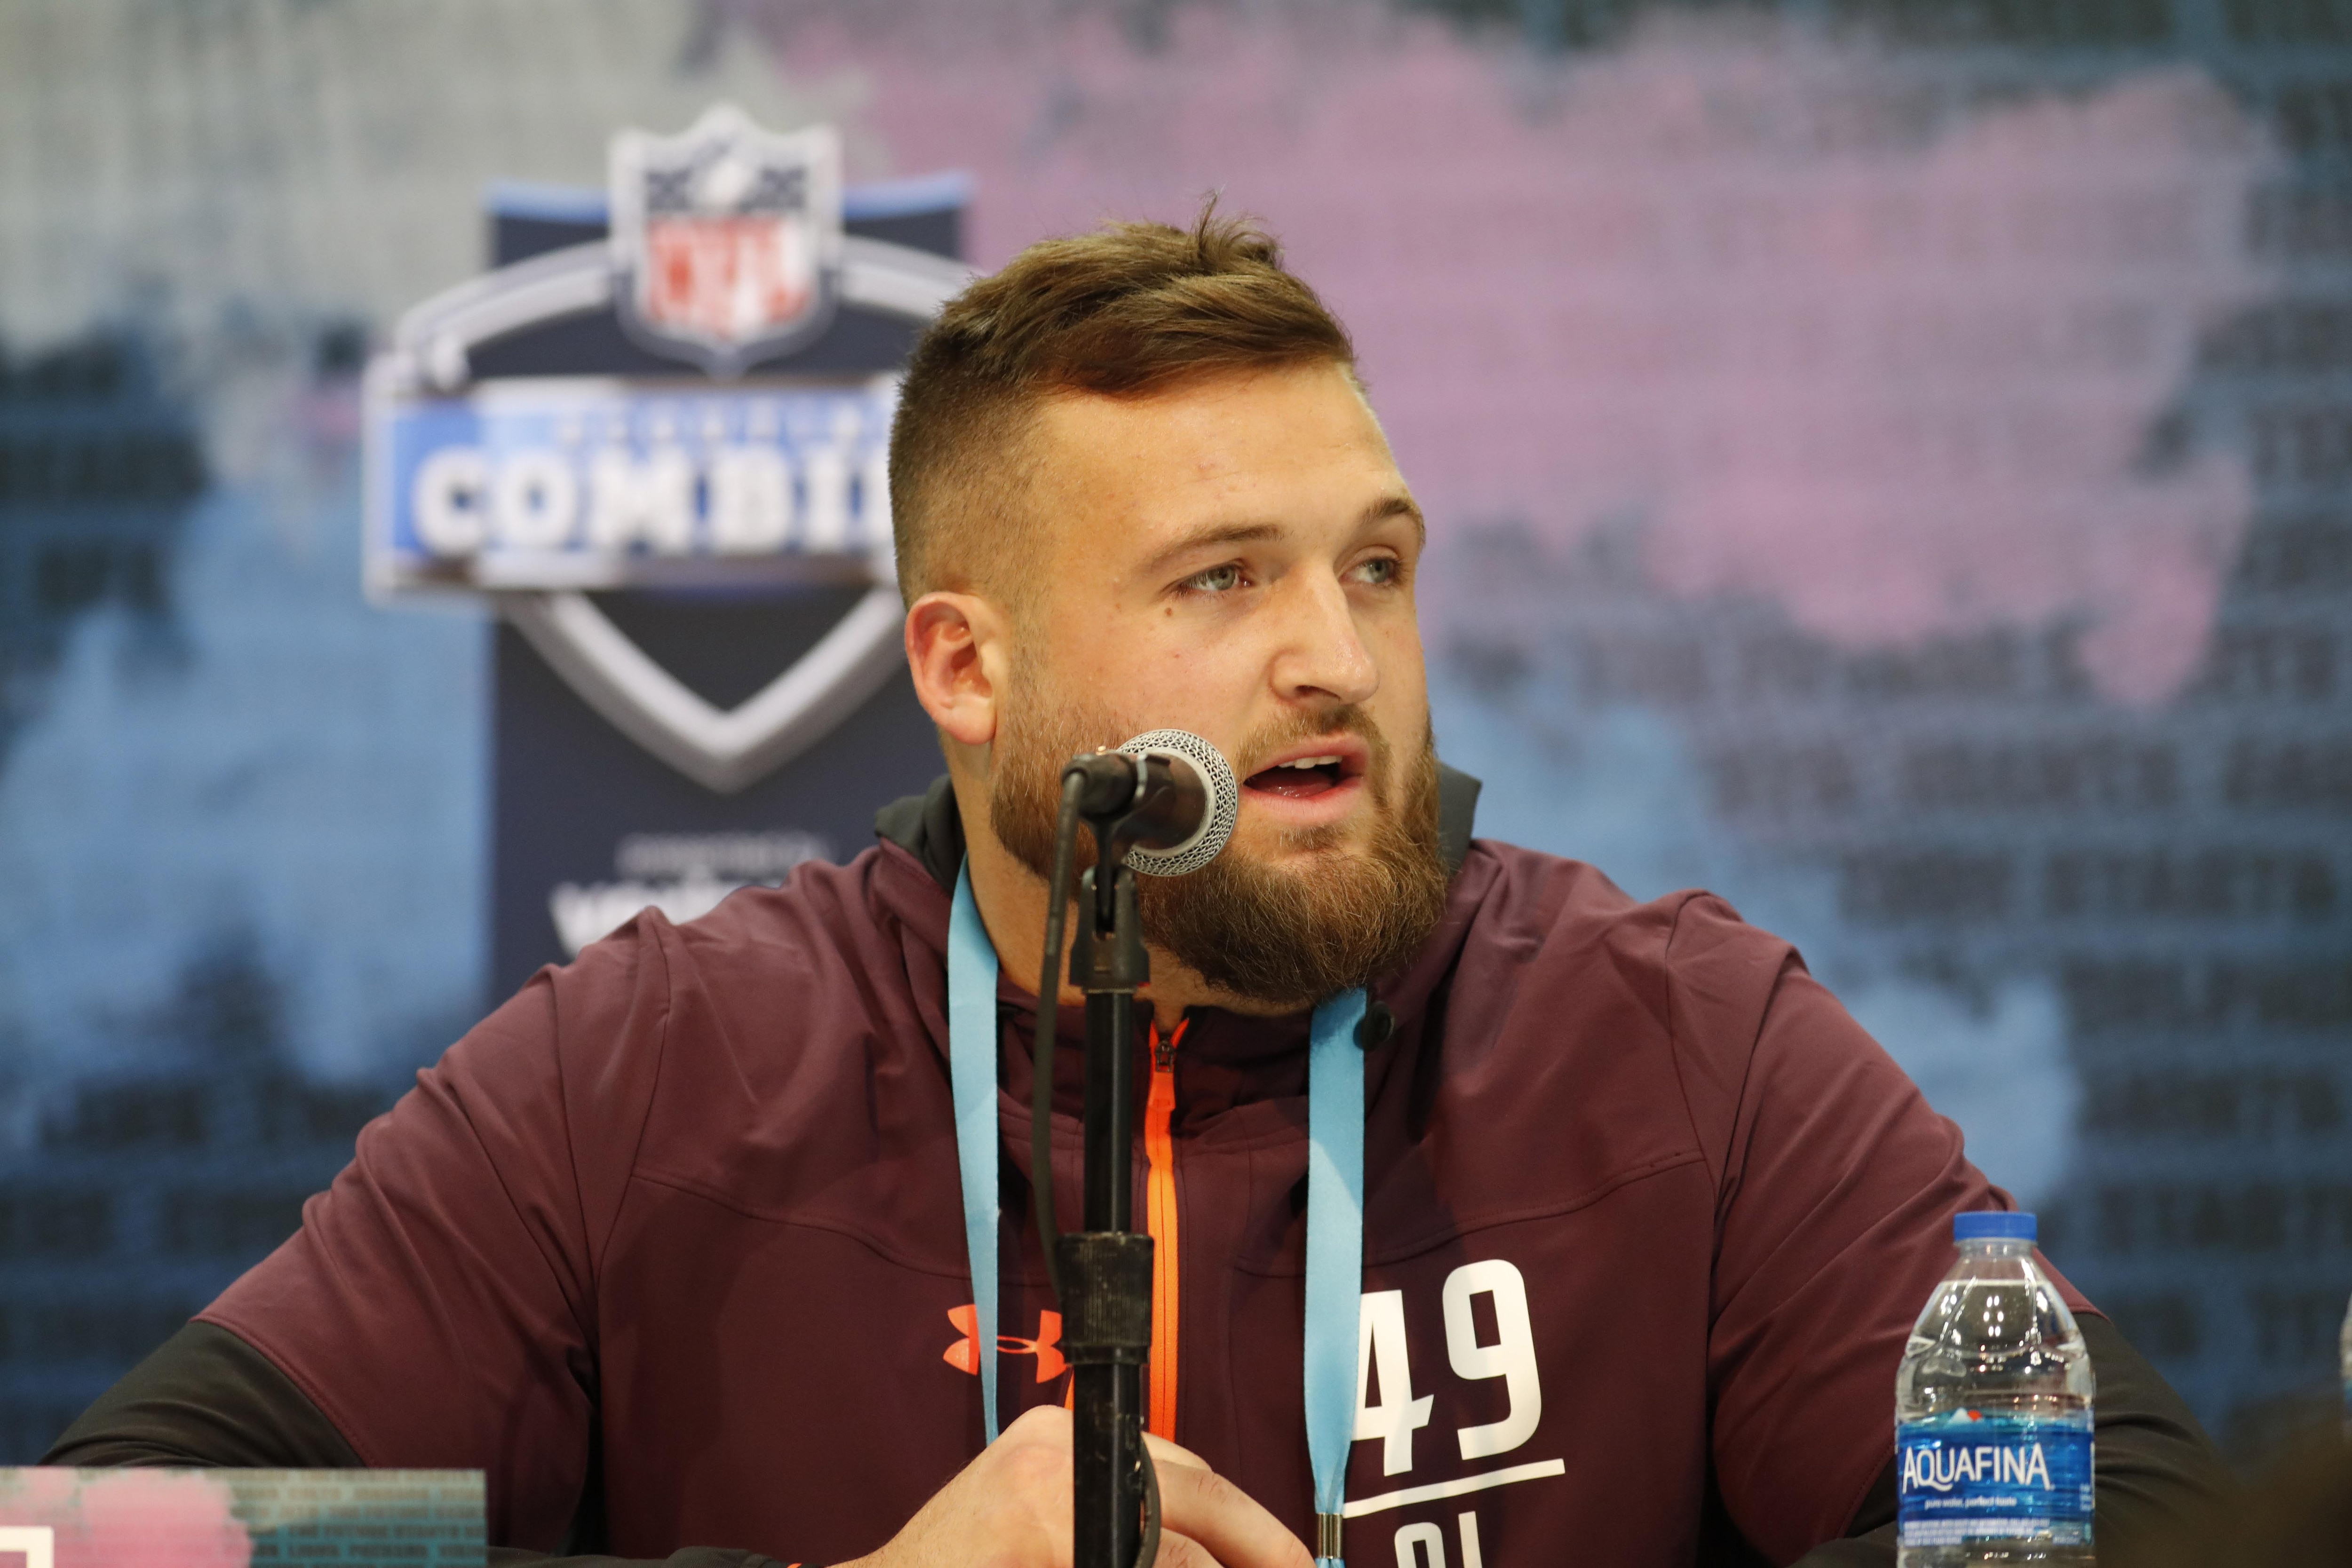 The New York Giants could draft Dalton Risner in the second round of the 2019 NFL draft.